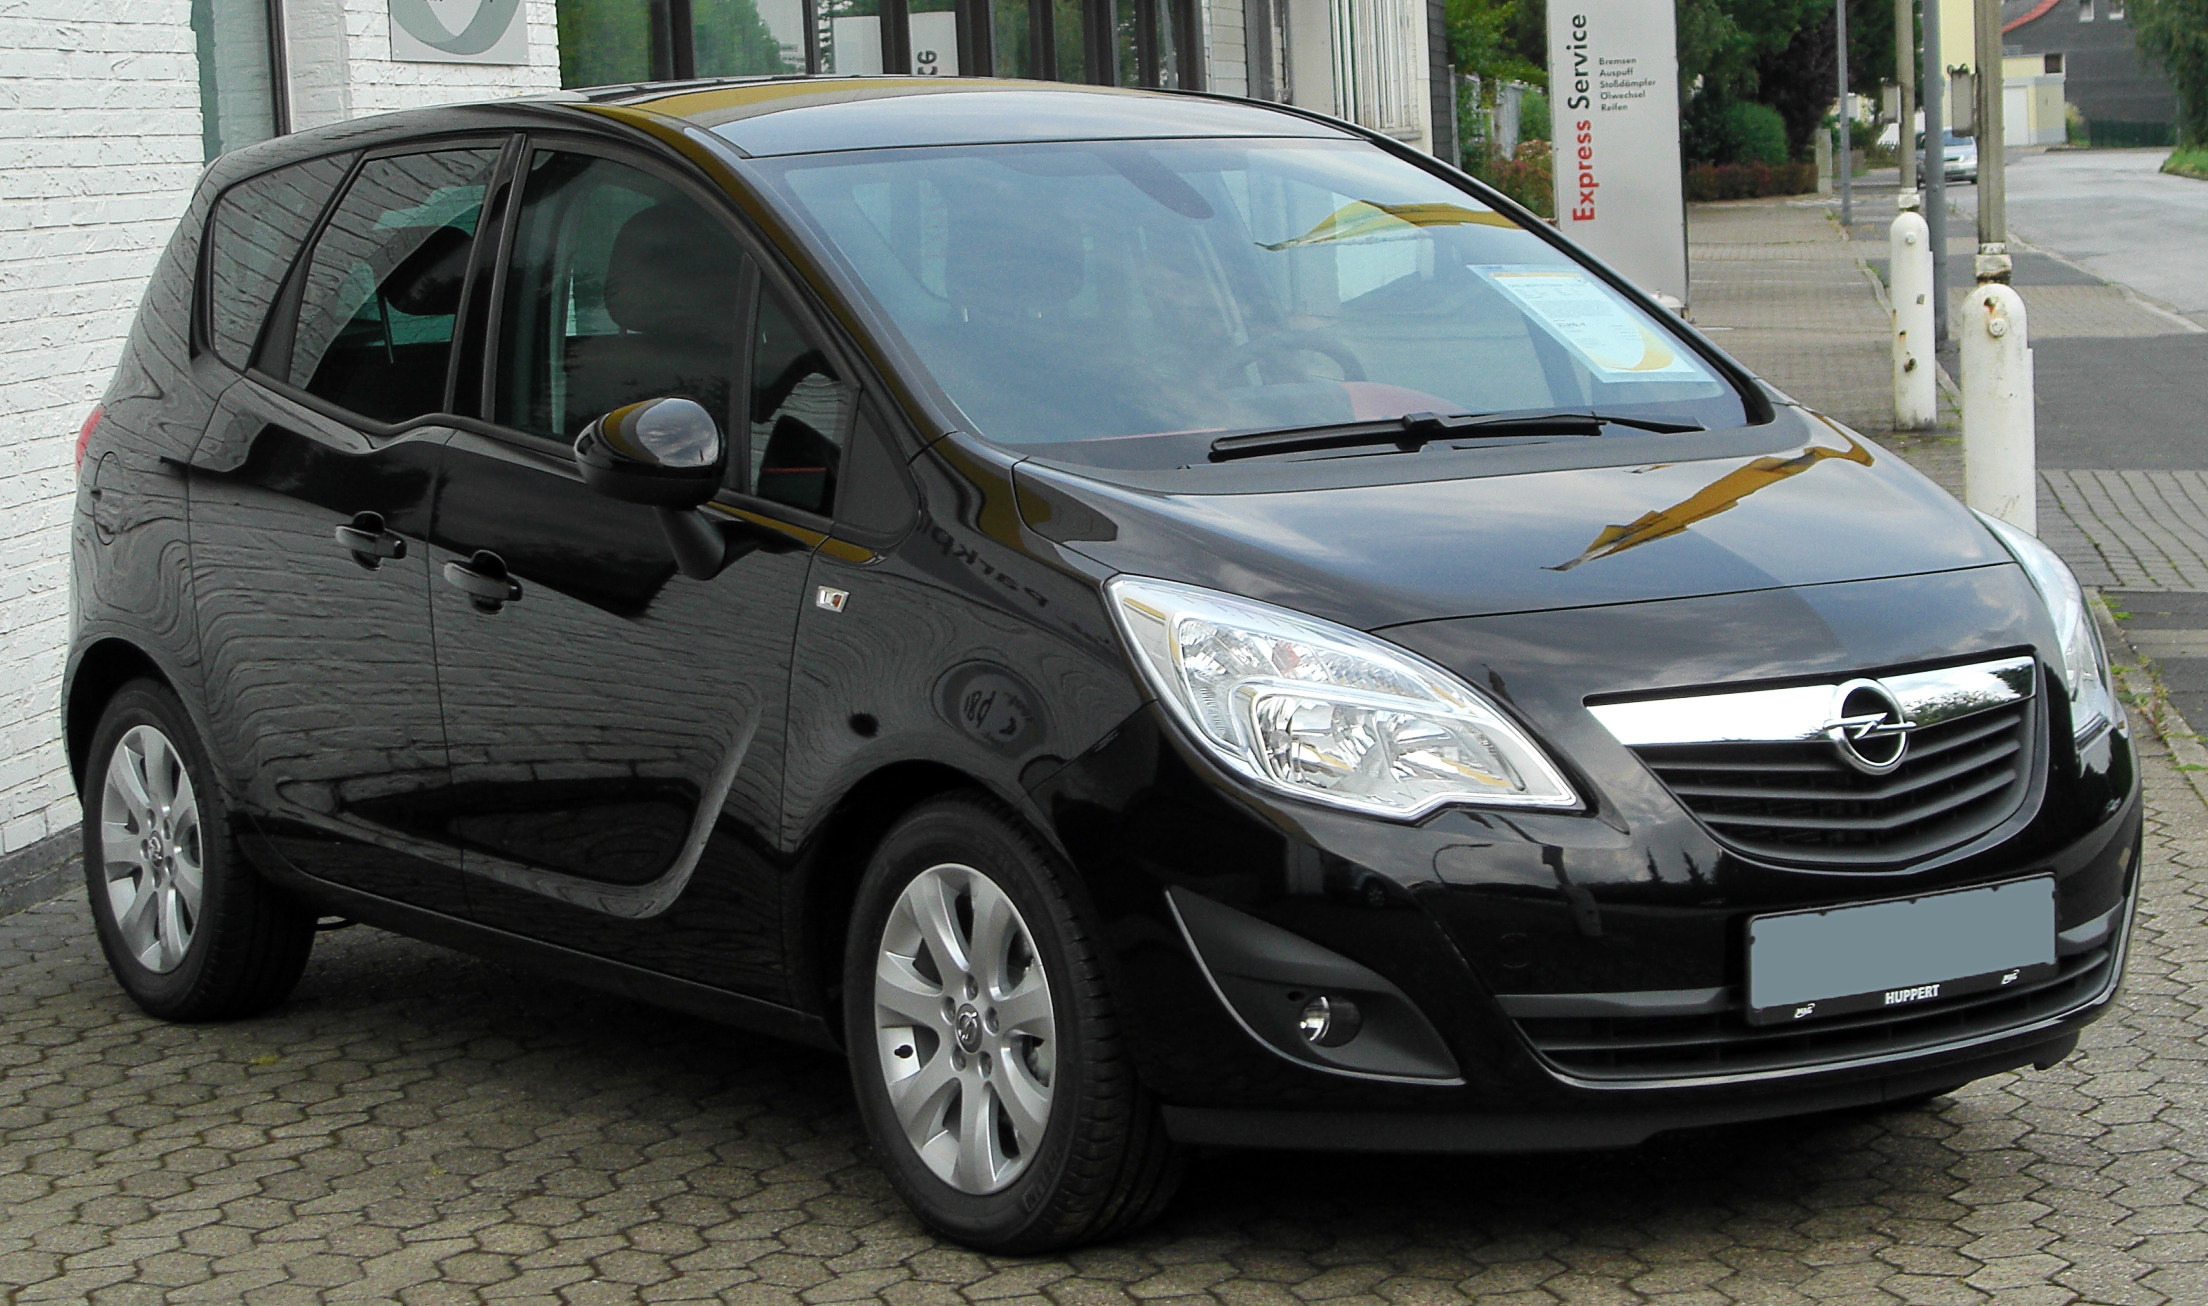 2010 opel meriva partsopen. Black Bedroom Furniture Sets. Home Design Ideas